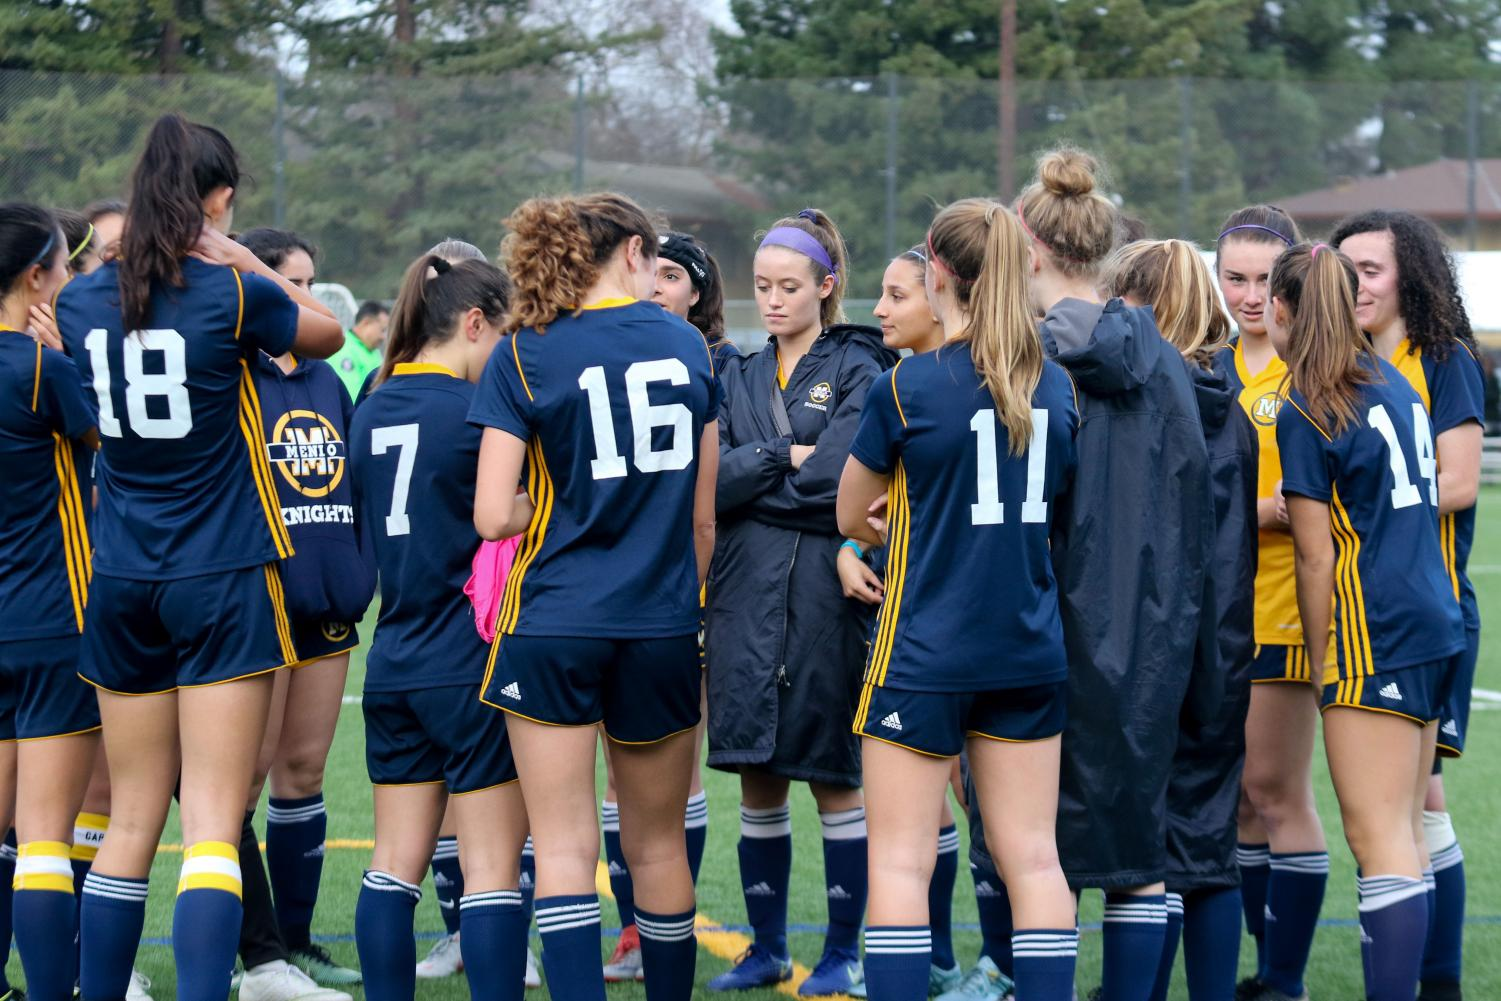 The varsity girls soccer team during a huddle on the field. Photo courtesy of Pam Tso McKenny.